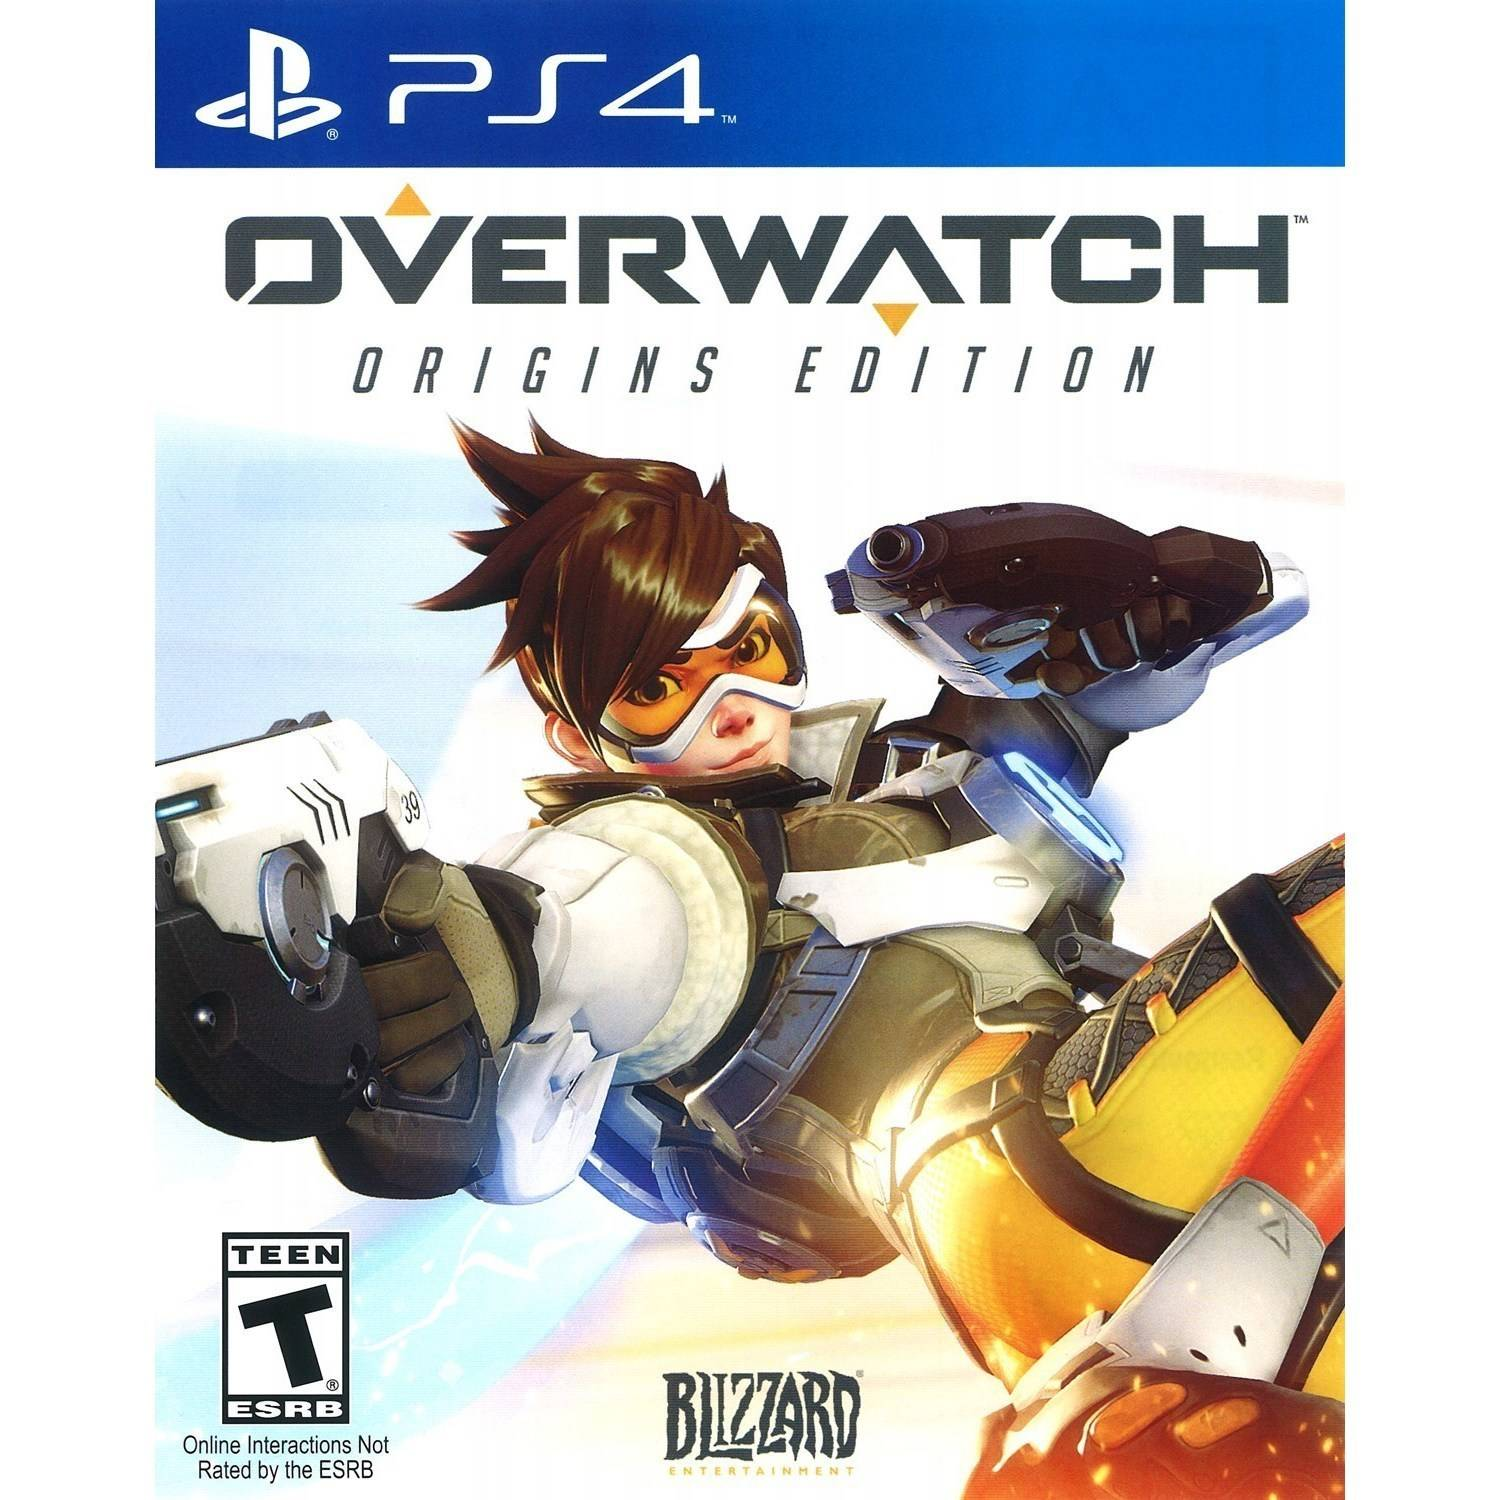 Overwatch Origins Edition (Playstation 4) by Blizzard Entertainment, Activision